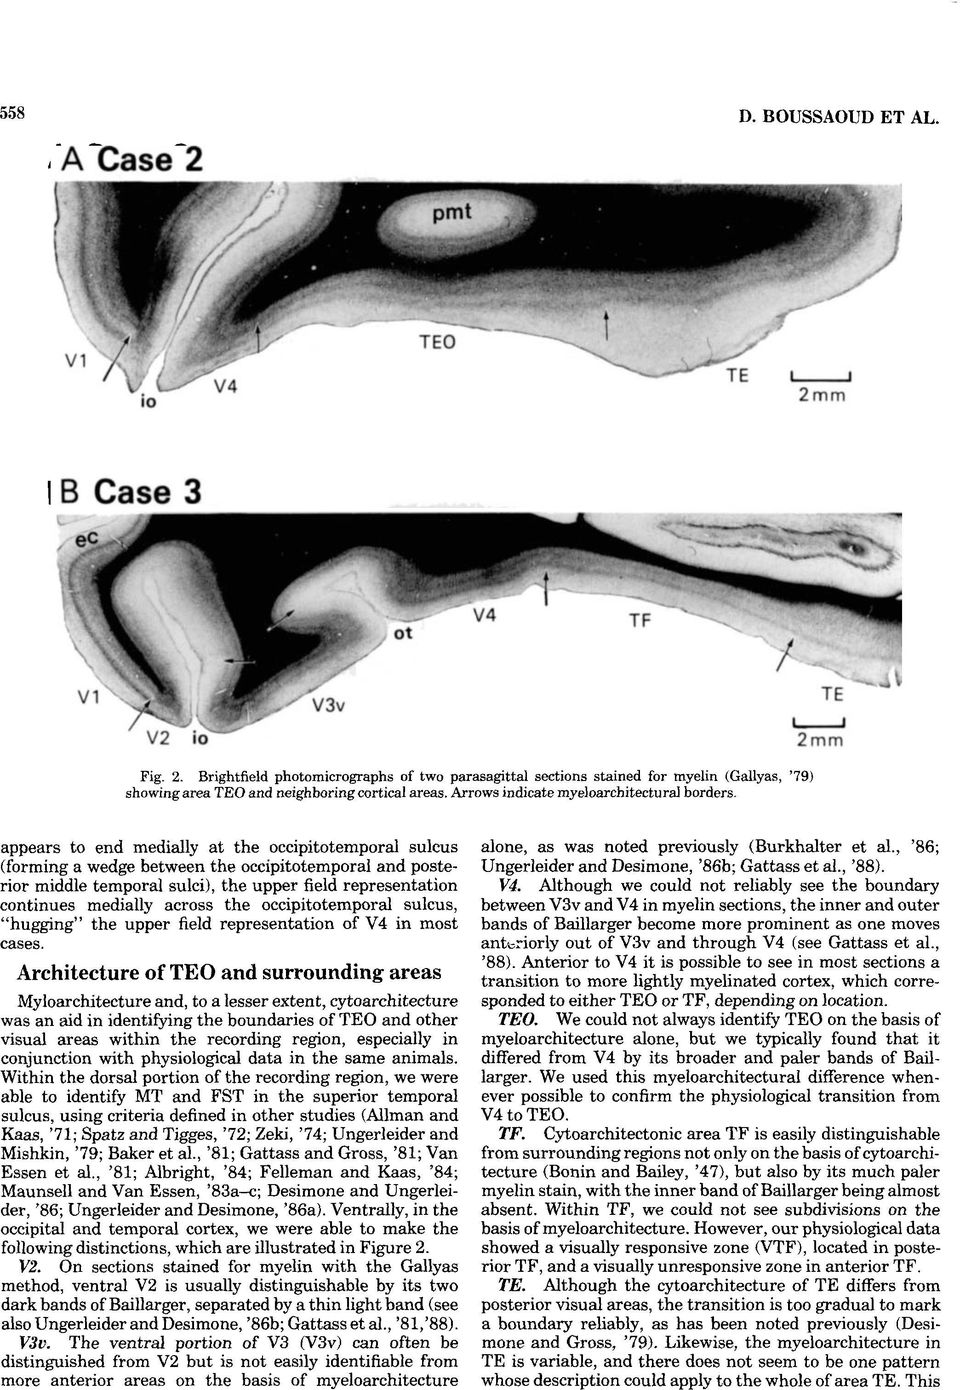 appears to end medially at the occipitotemporal sulcus (forming a wedge between the occipitotemporal and posterior middle temporal sulci), the upper field representation continues medially across the